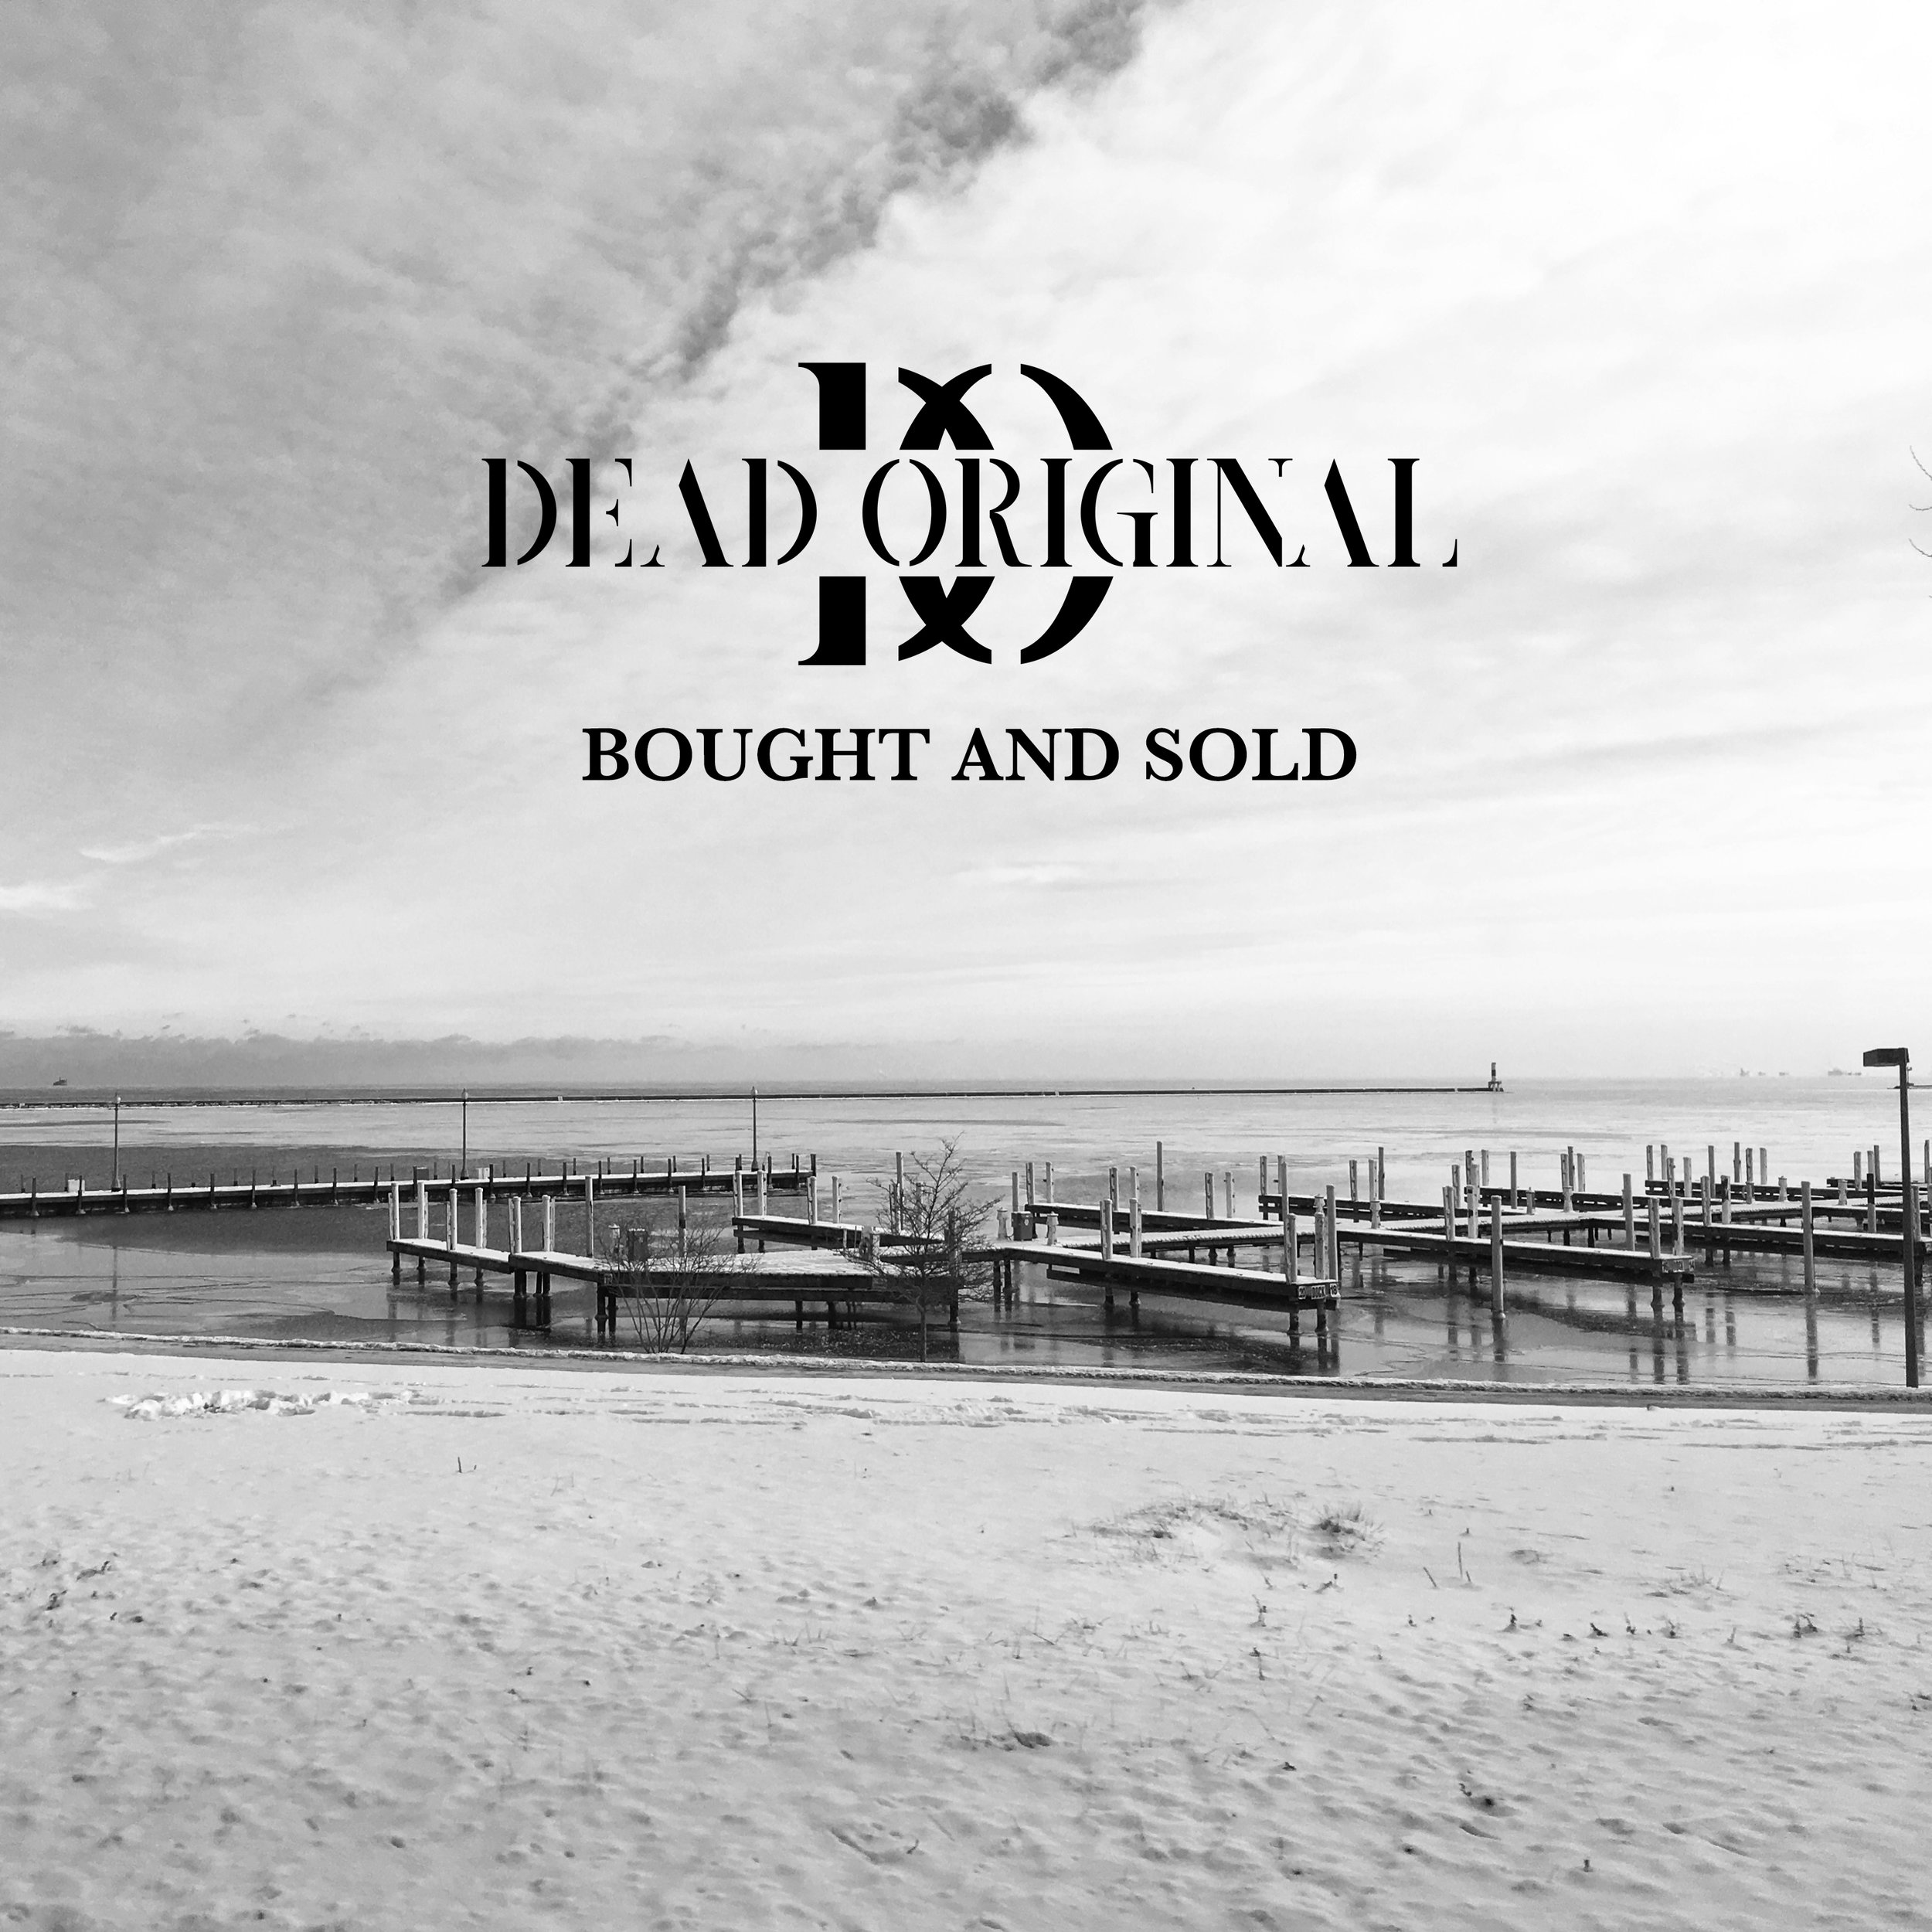 Order a autographed physical copy of Dead Original's debut album 'Bought and Sold' CLICK HERE - DEAD ORIGINAL - BOUGHT AND SOLD